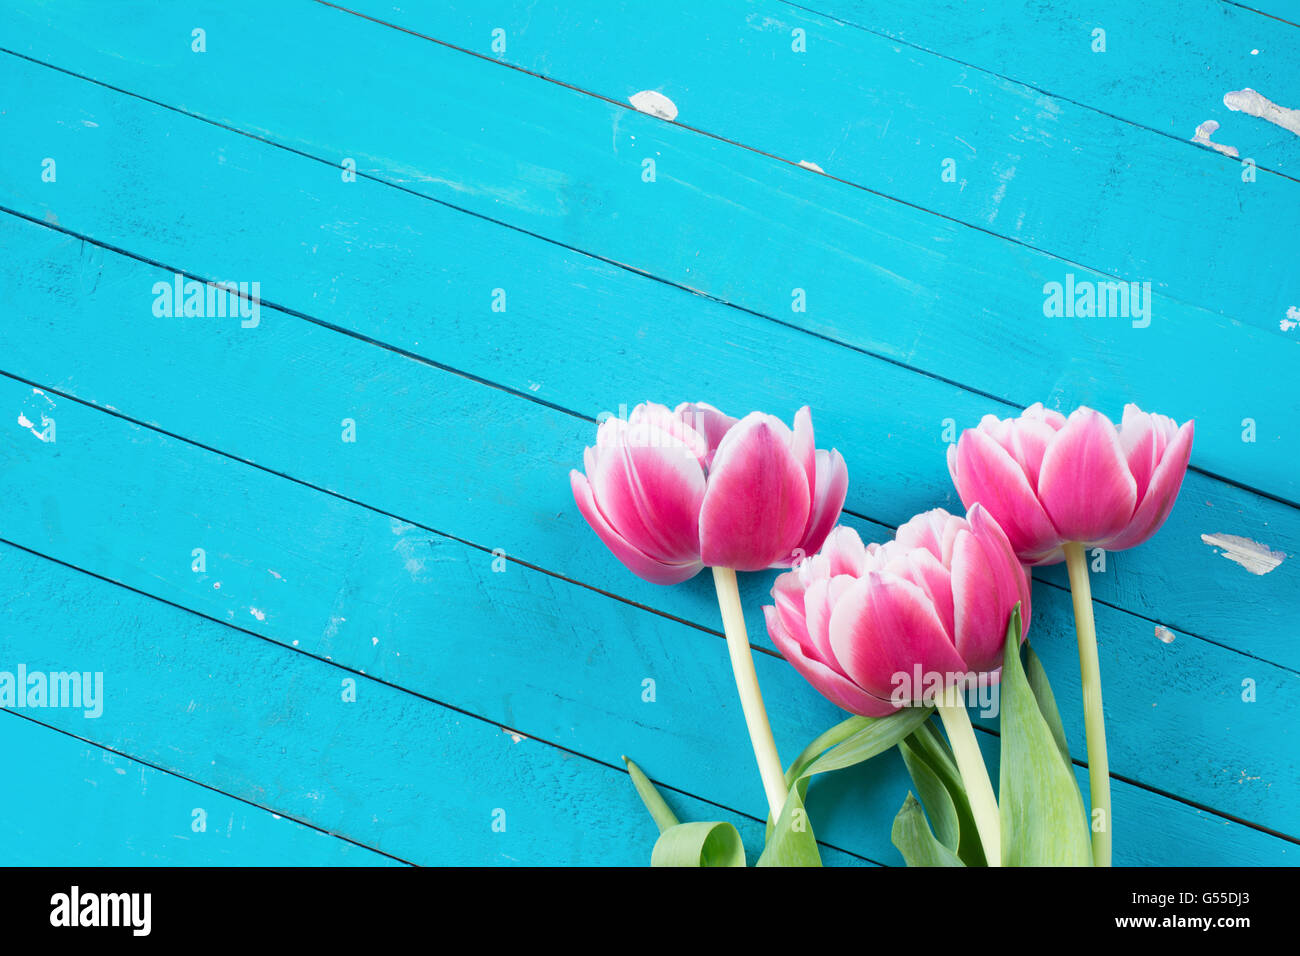 Floral background three pink flowers on bright blue vintage wooden floral background three pink flowers on bright blue vintage wooden background with copy space for text mightylinksfo